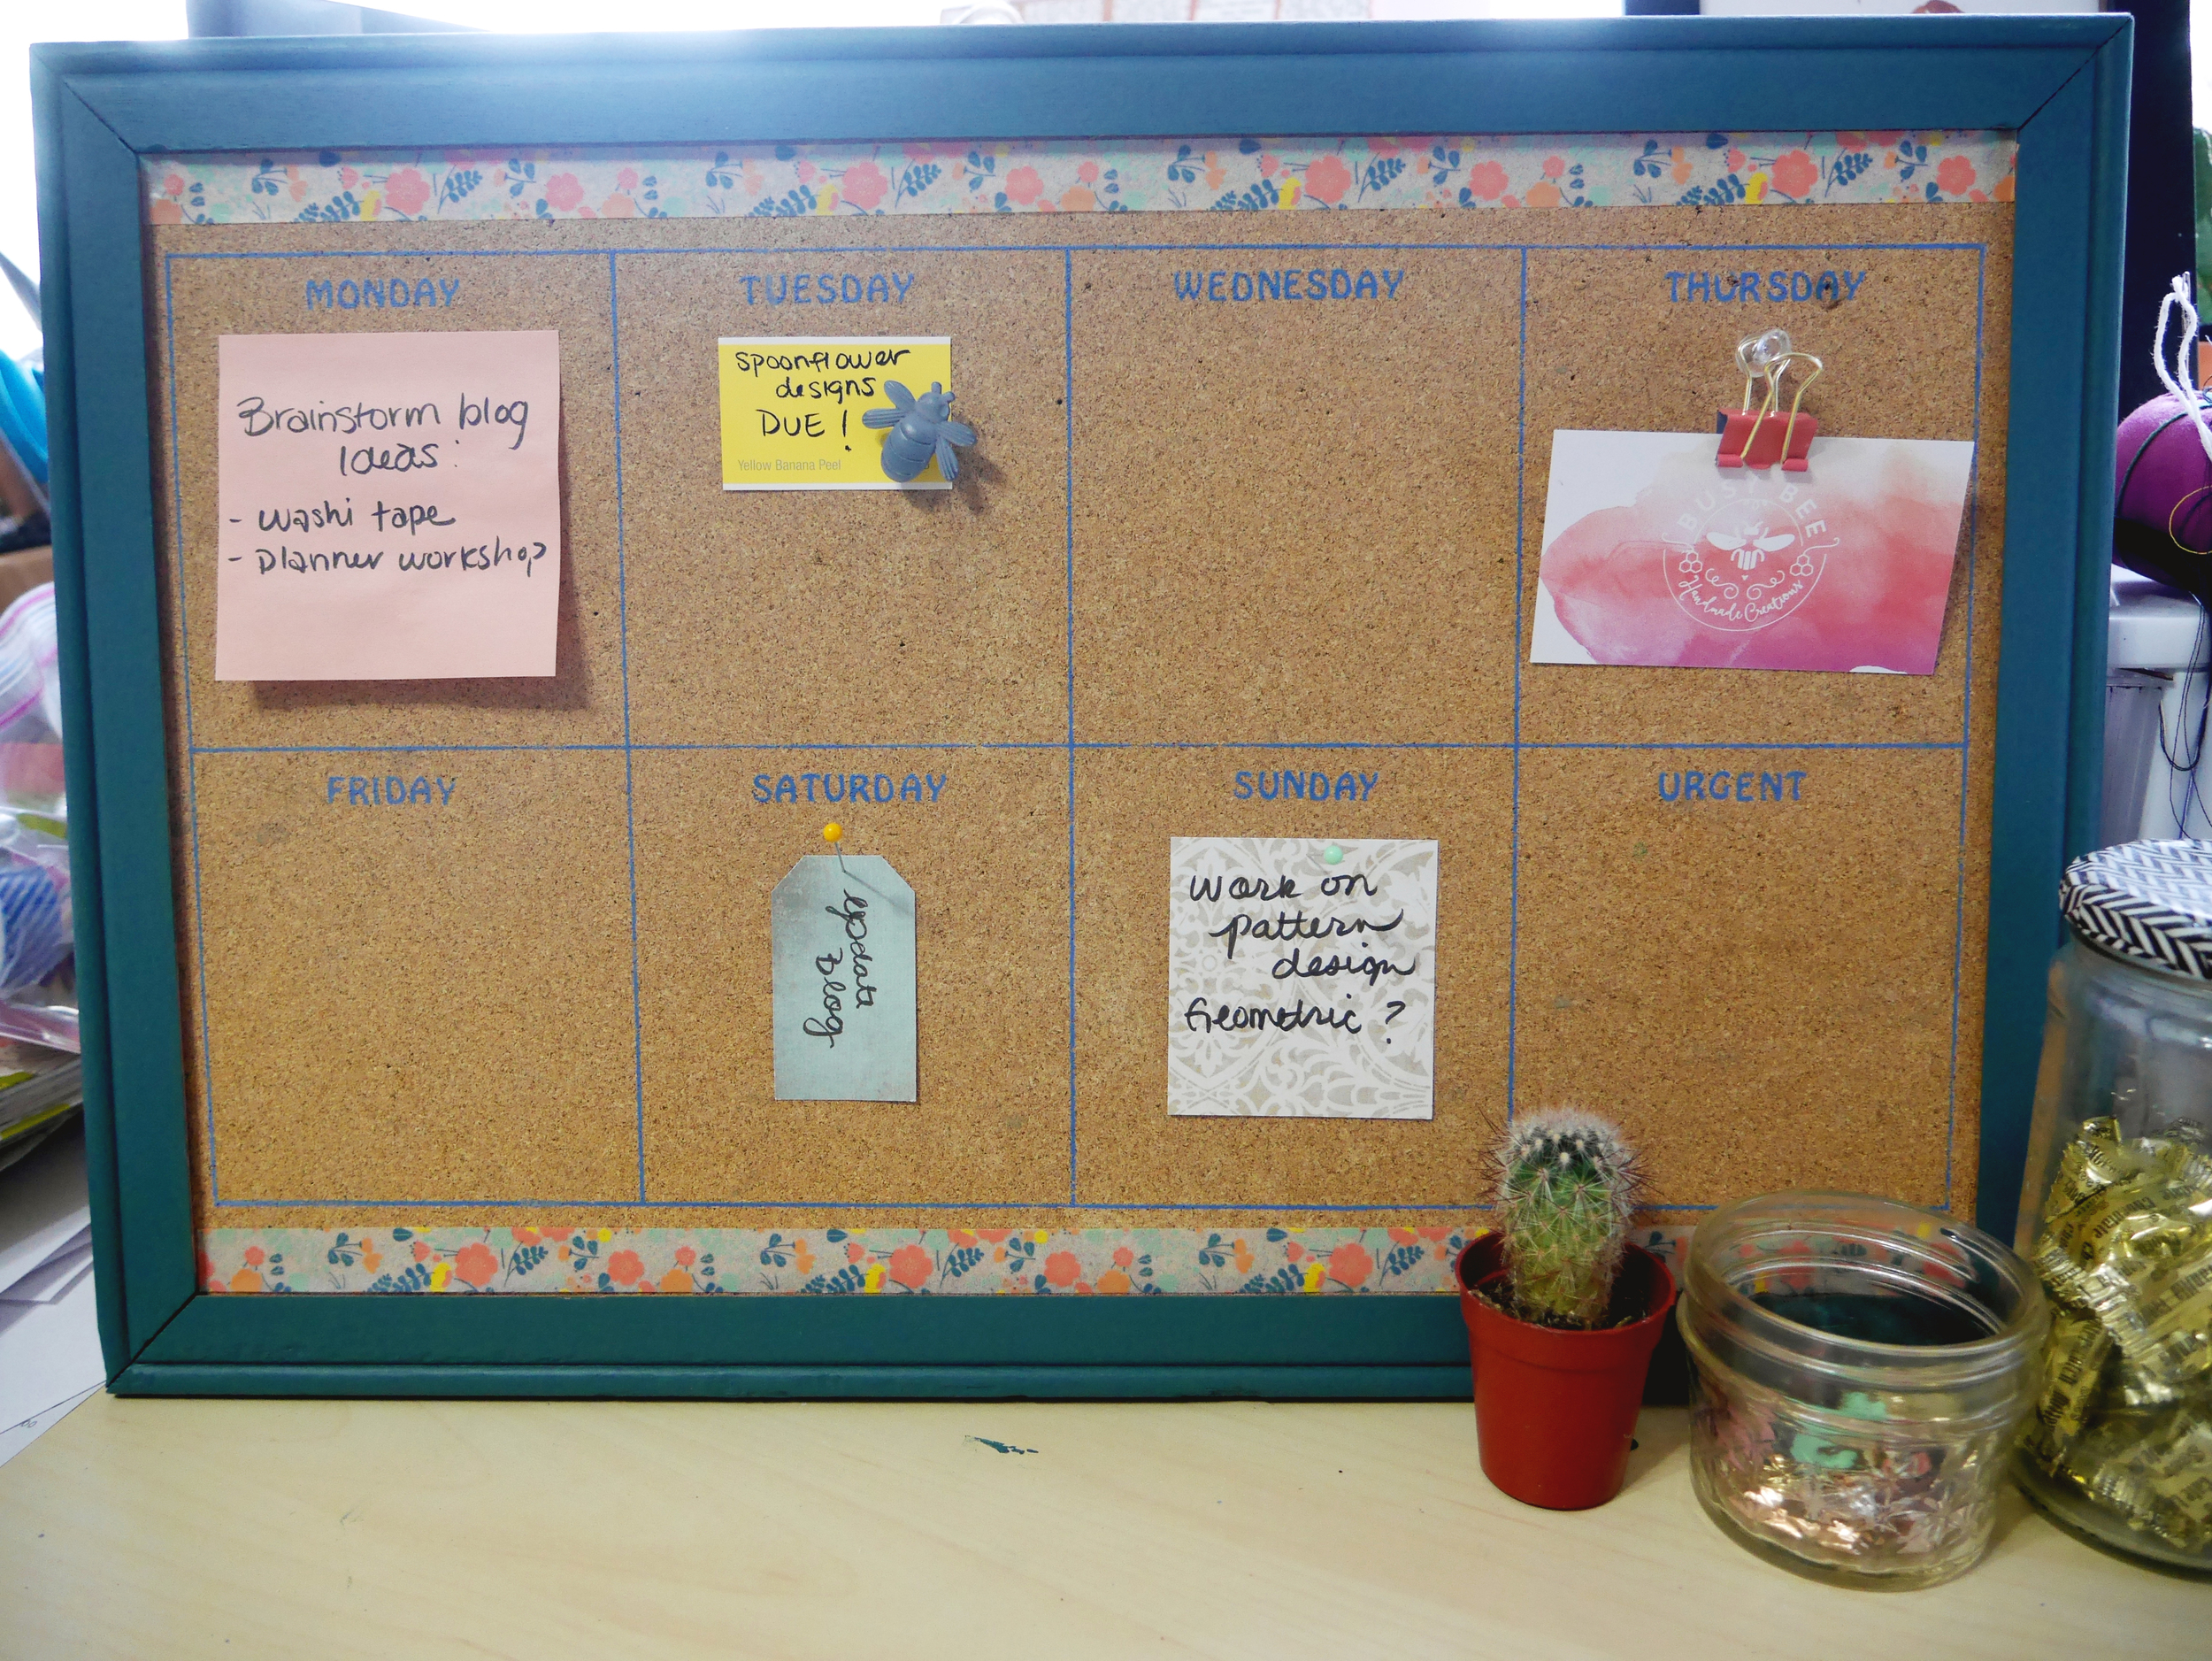 Voila!  A cute bulletin board for my notes.